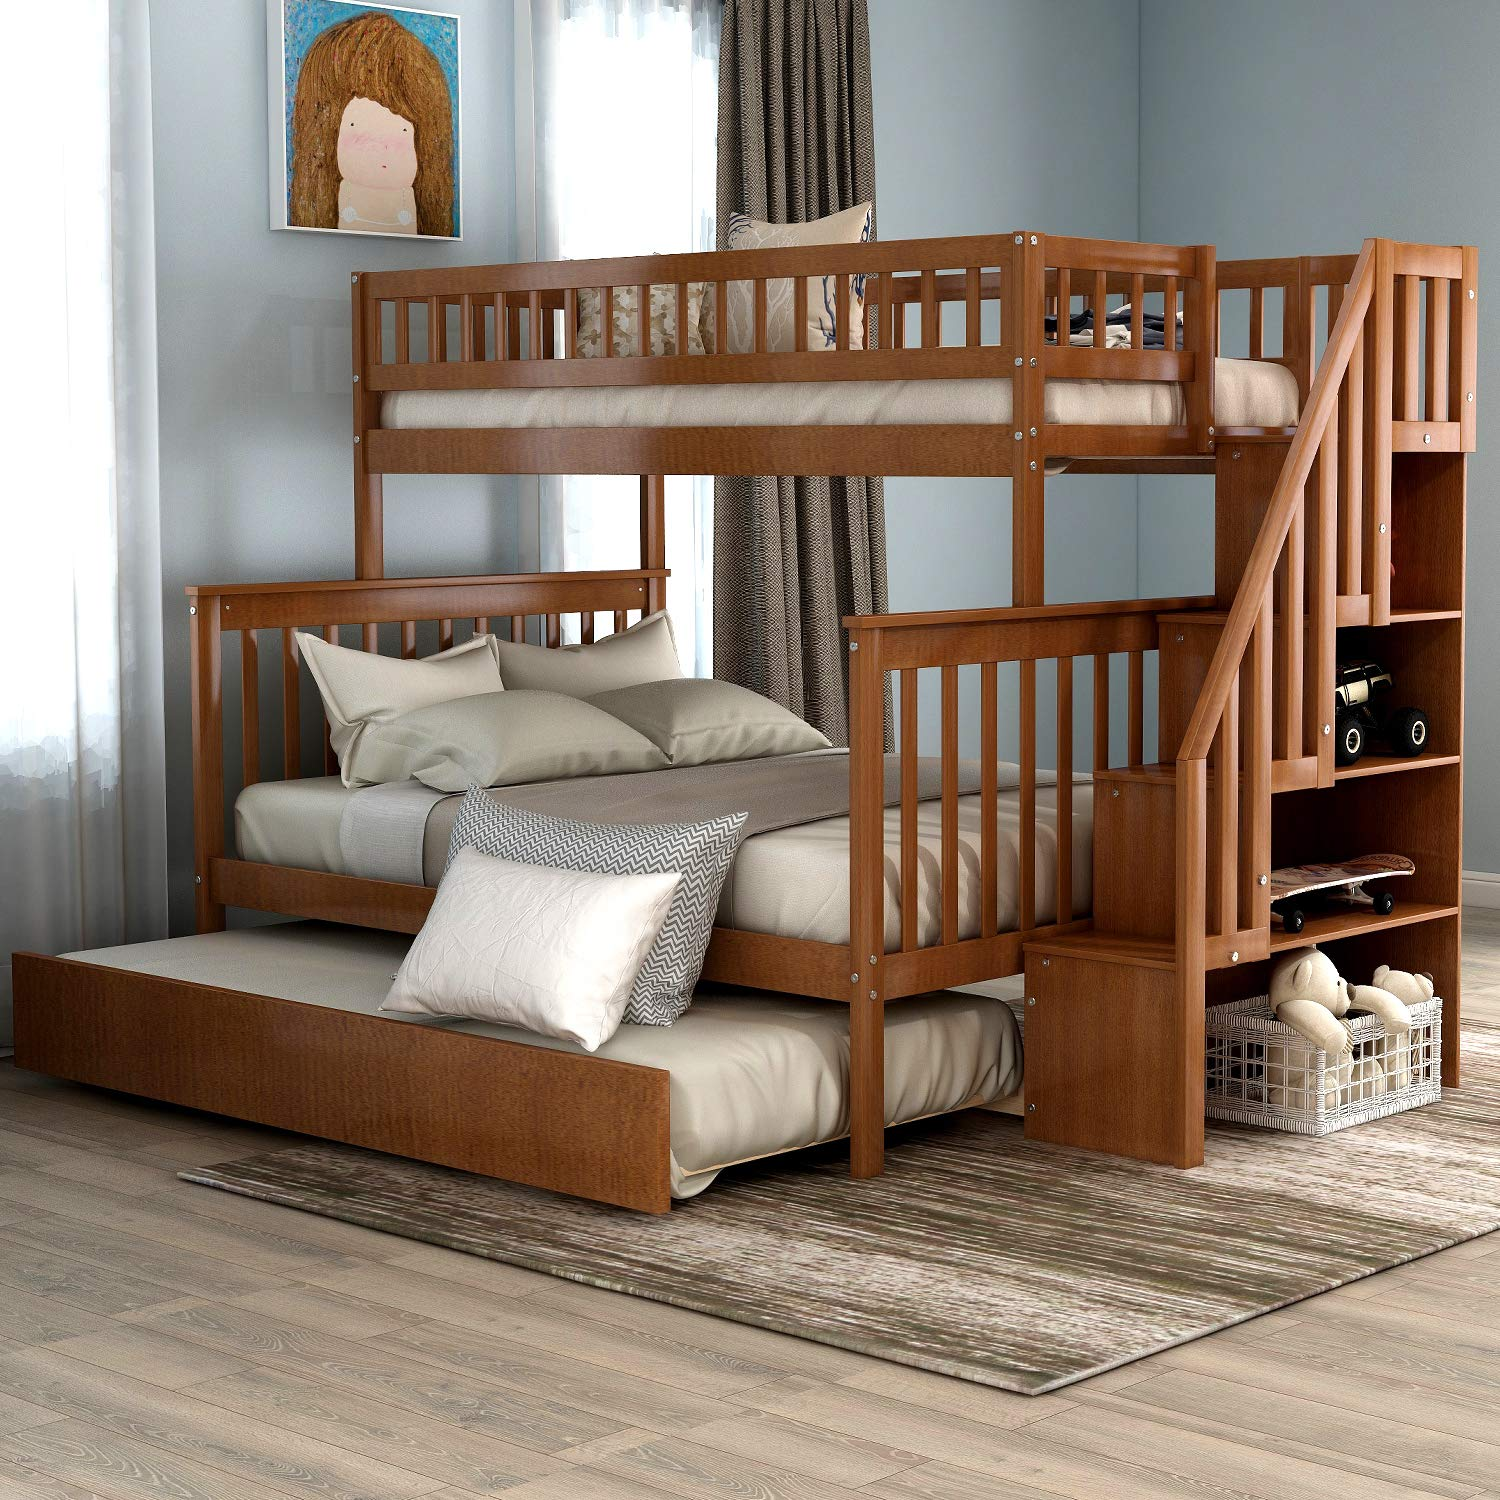 Twin-Over-Full Bunk Bed for Kids, Trundle Bed Loft System with Storage in The Steps, Warm Walnut